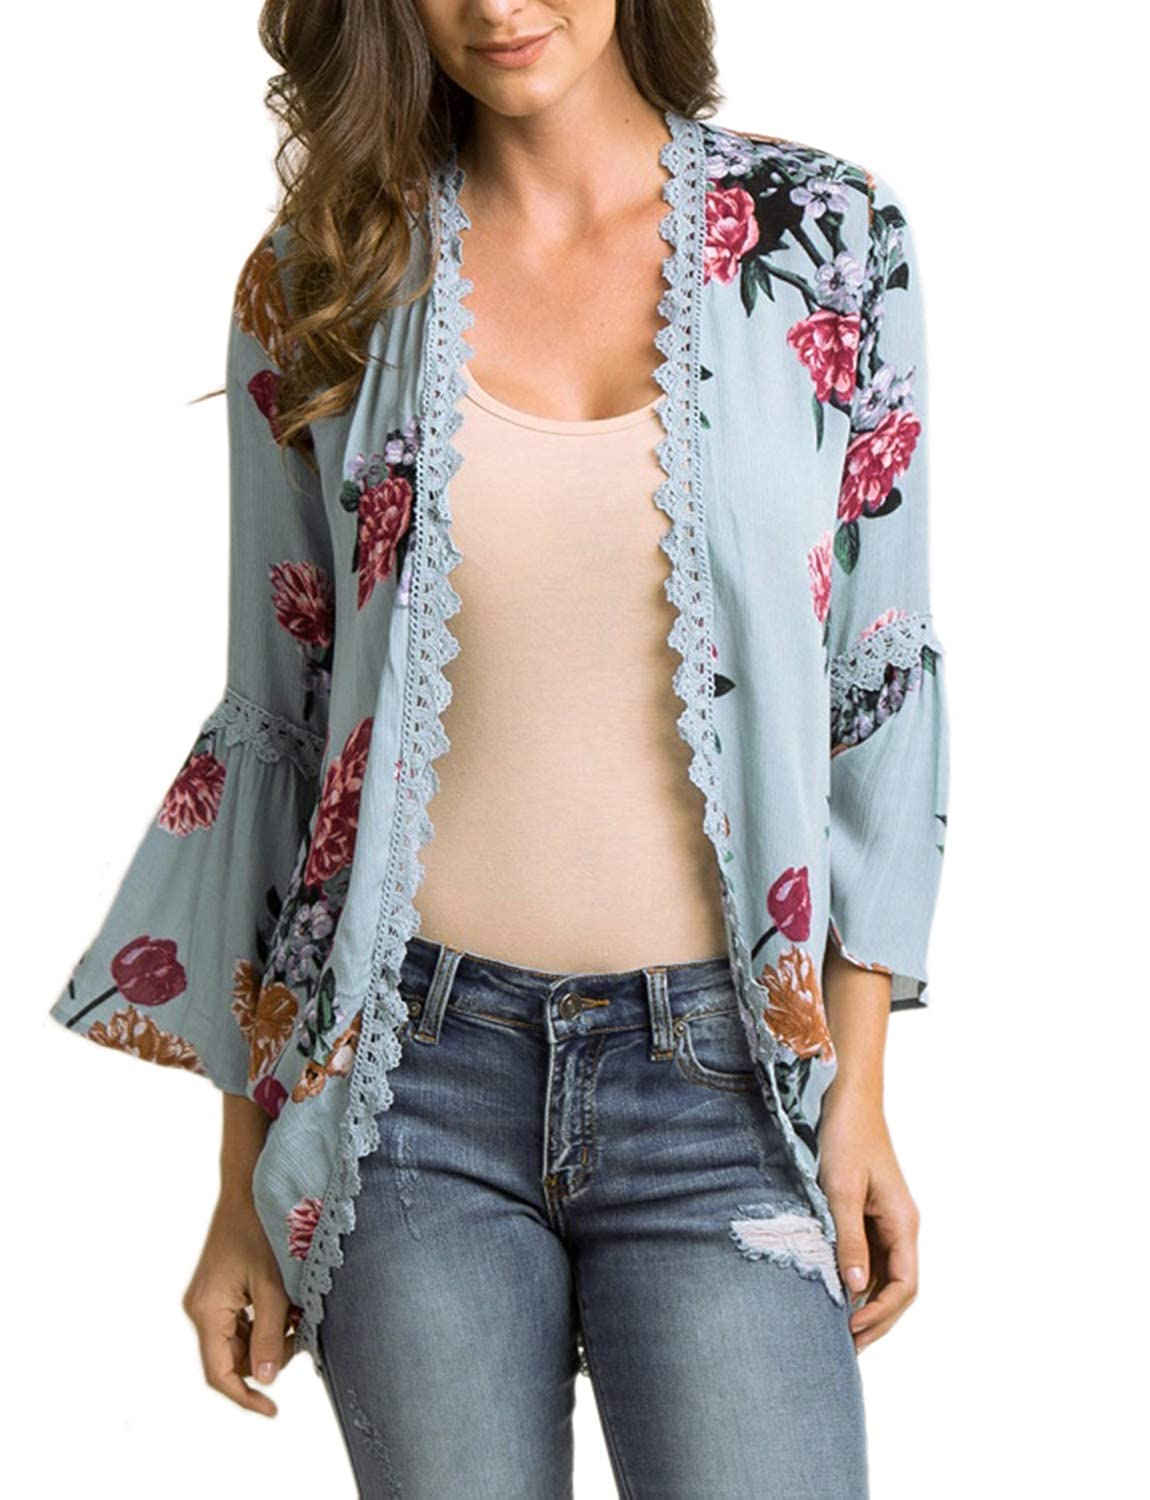 bluee Chunoy Women Casual Floral Bell Sleeve Hollow Out Open Front Kimono Blouse Top